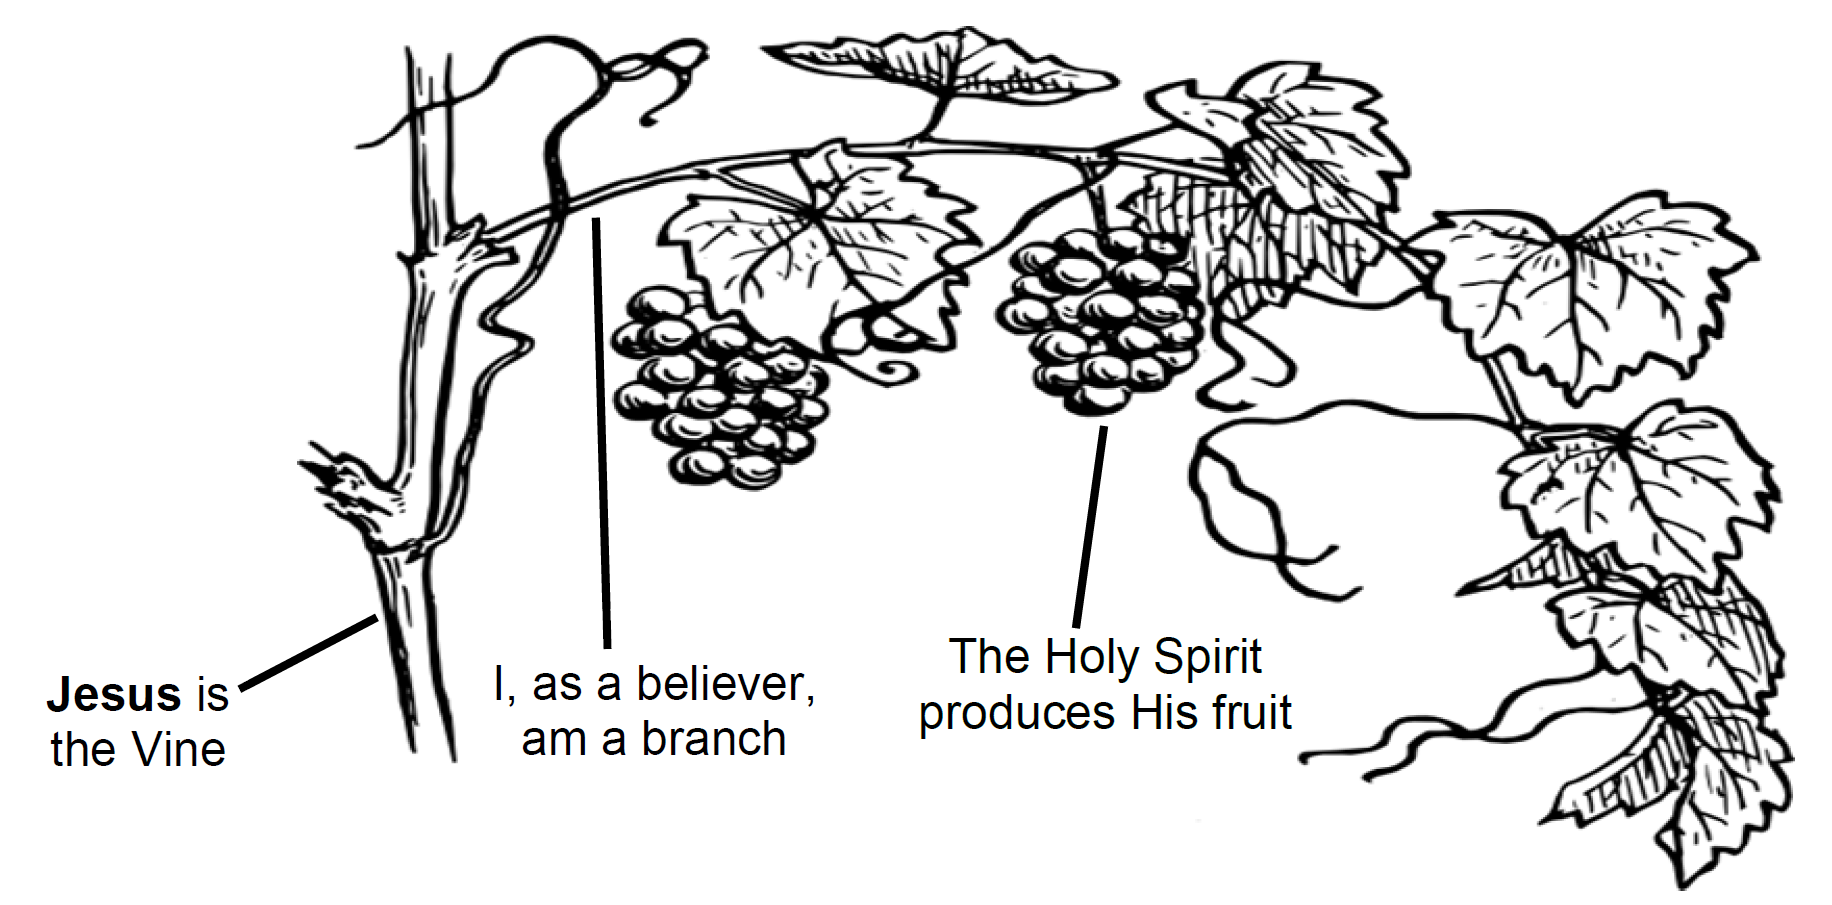 The Vine Branches and Holy Spirit